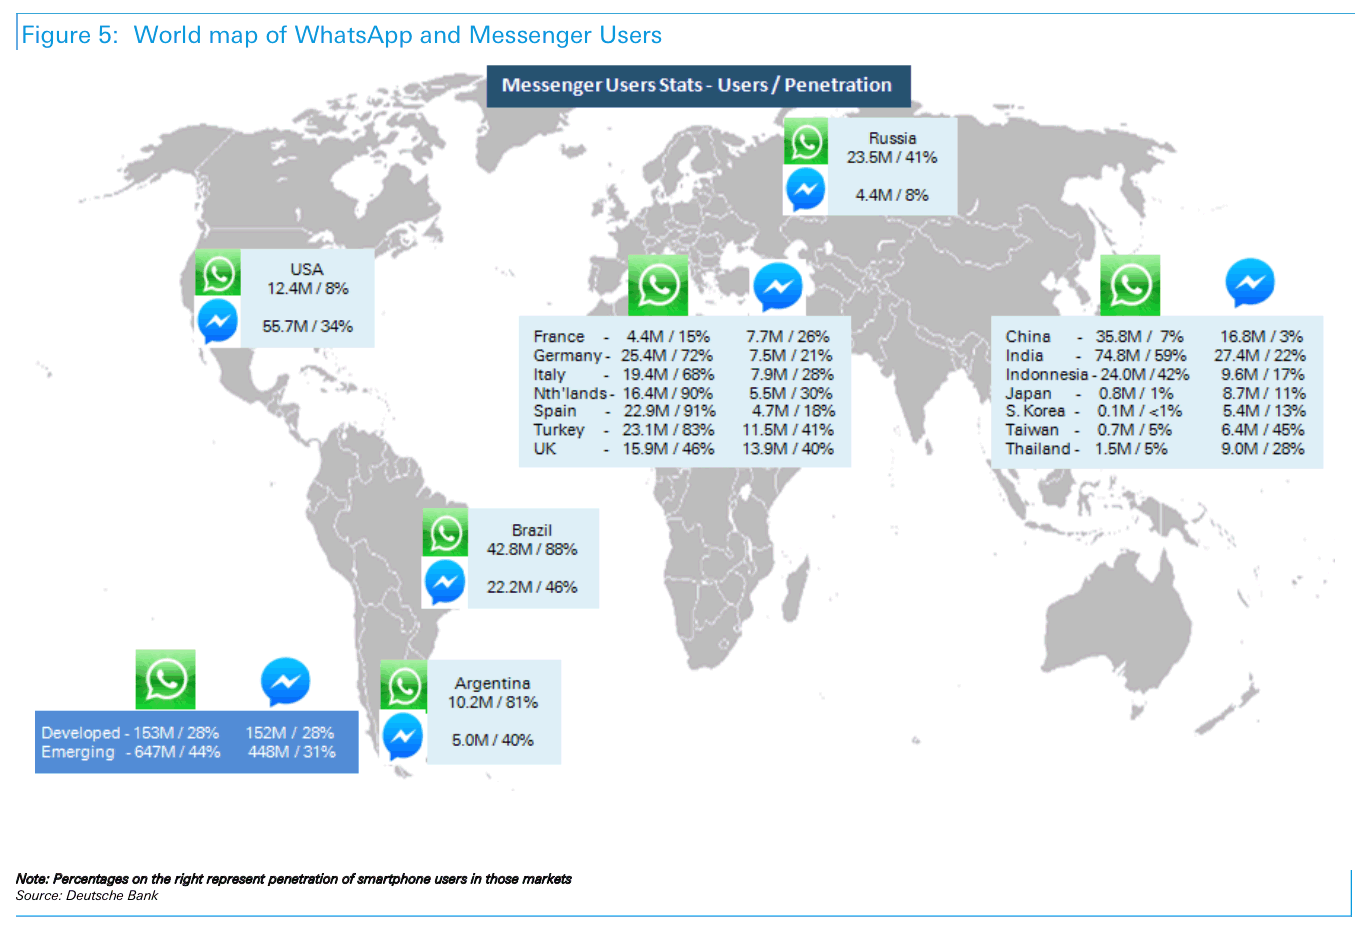 A world map showing the most popular messaging apps in each region